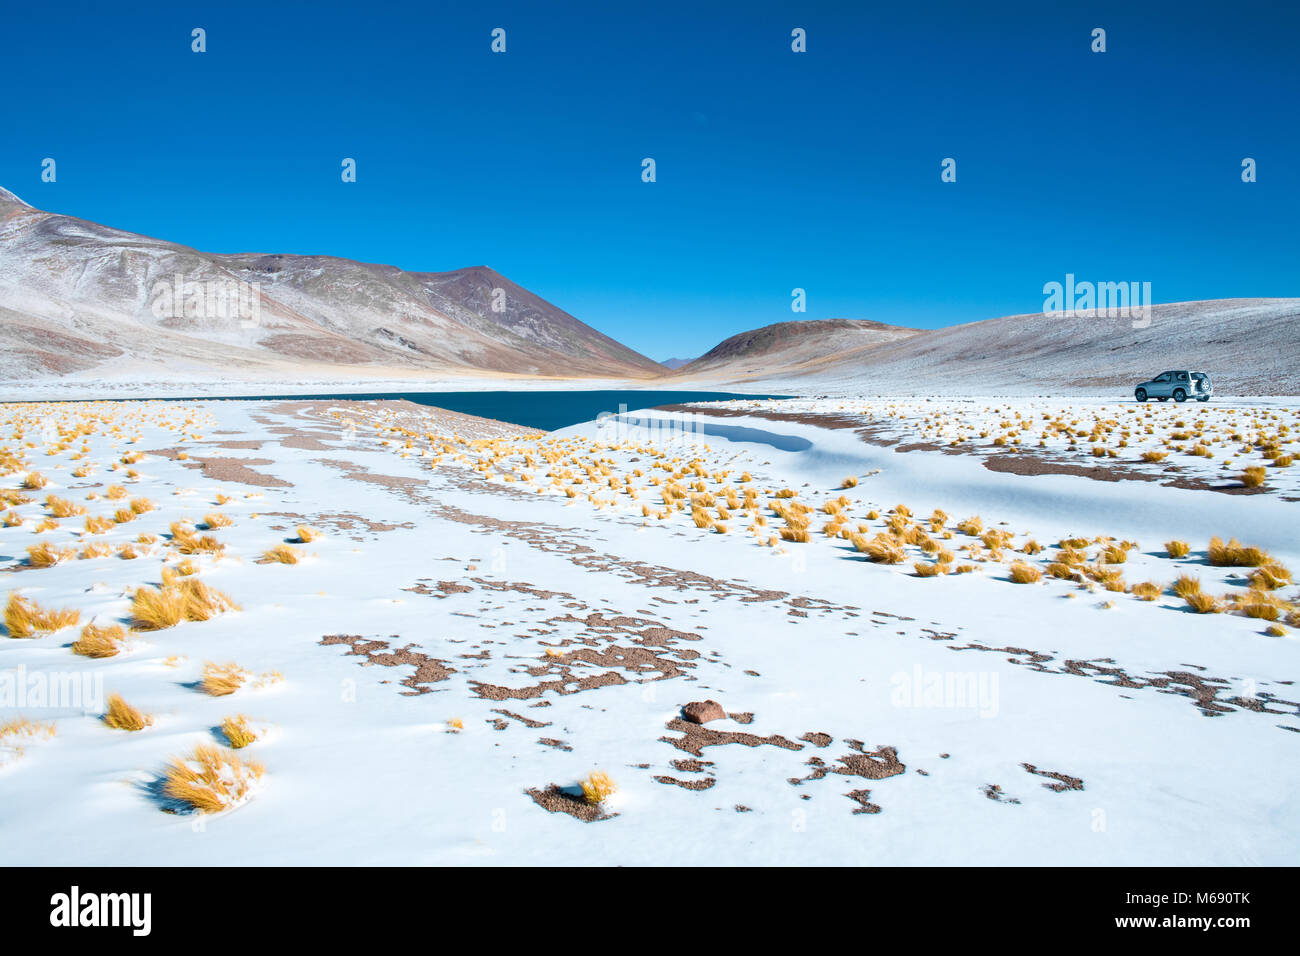 Miniques Lagoon in the Altiplano (High Andean Plateau) at an altitude of 4350m, Los Flamencos National Reserve, - Stock Image